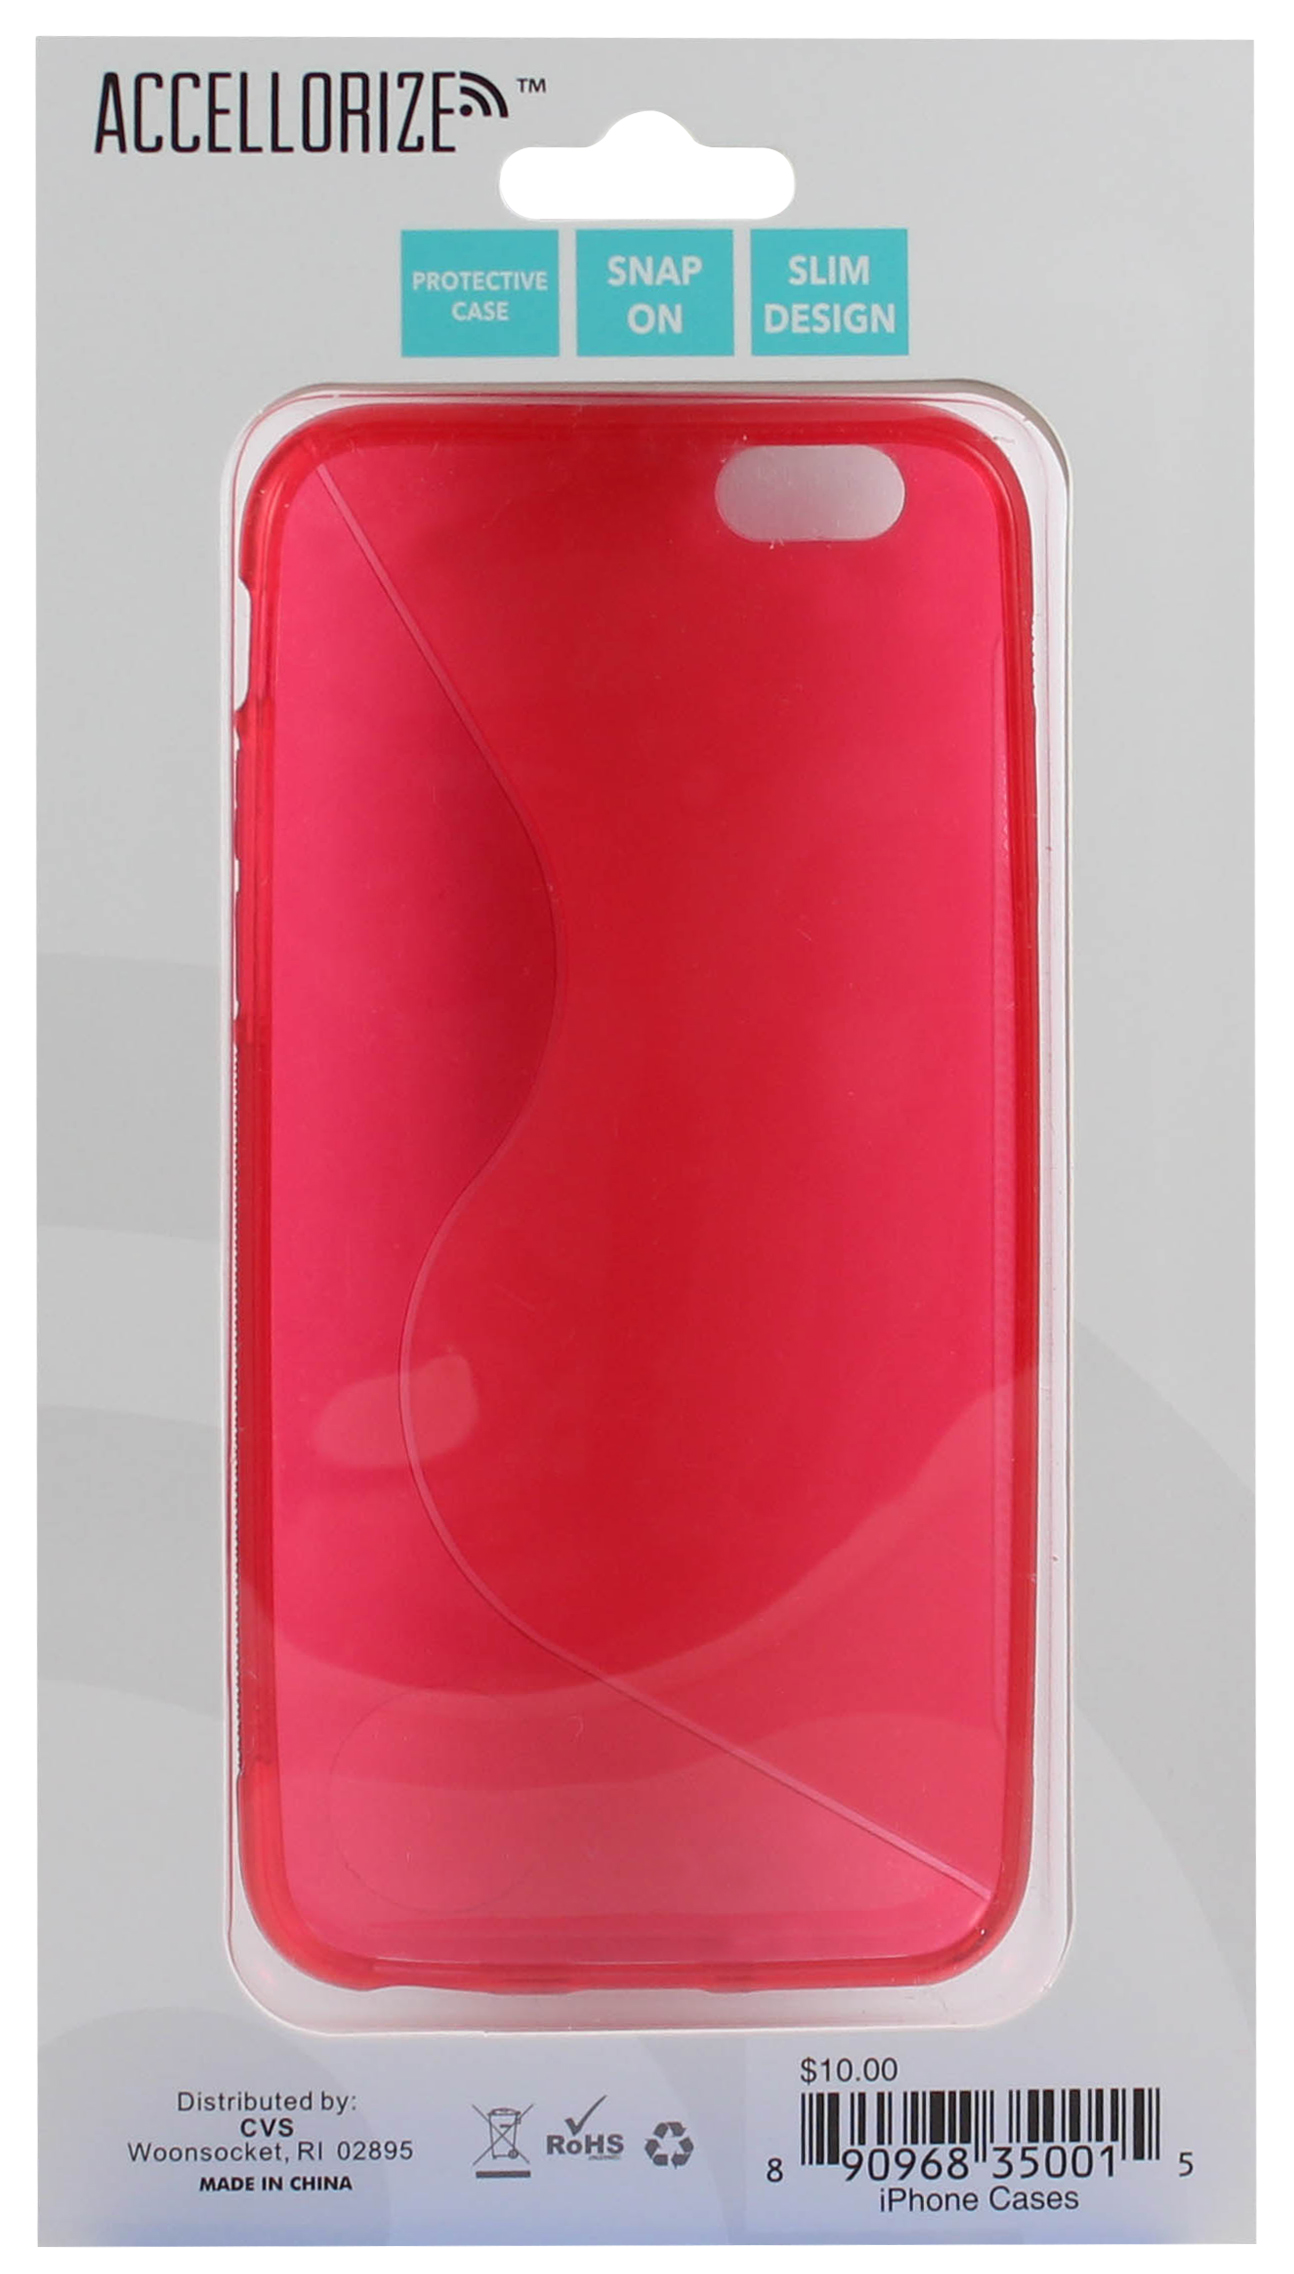 ACCELLORIZE 35001 RED PROTECTIVE CASE FOR IPHONE 6 MADE OF